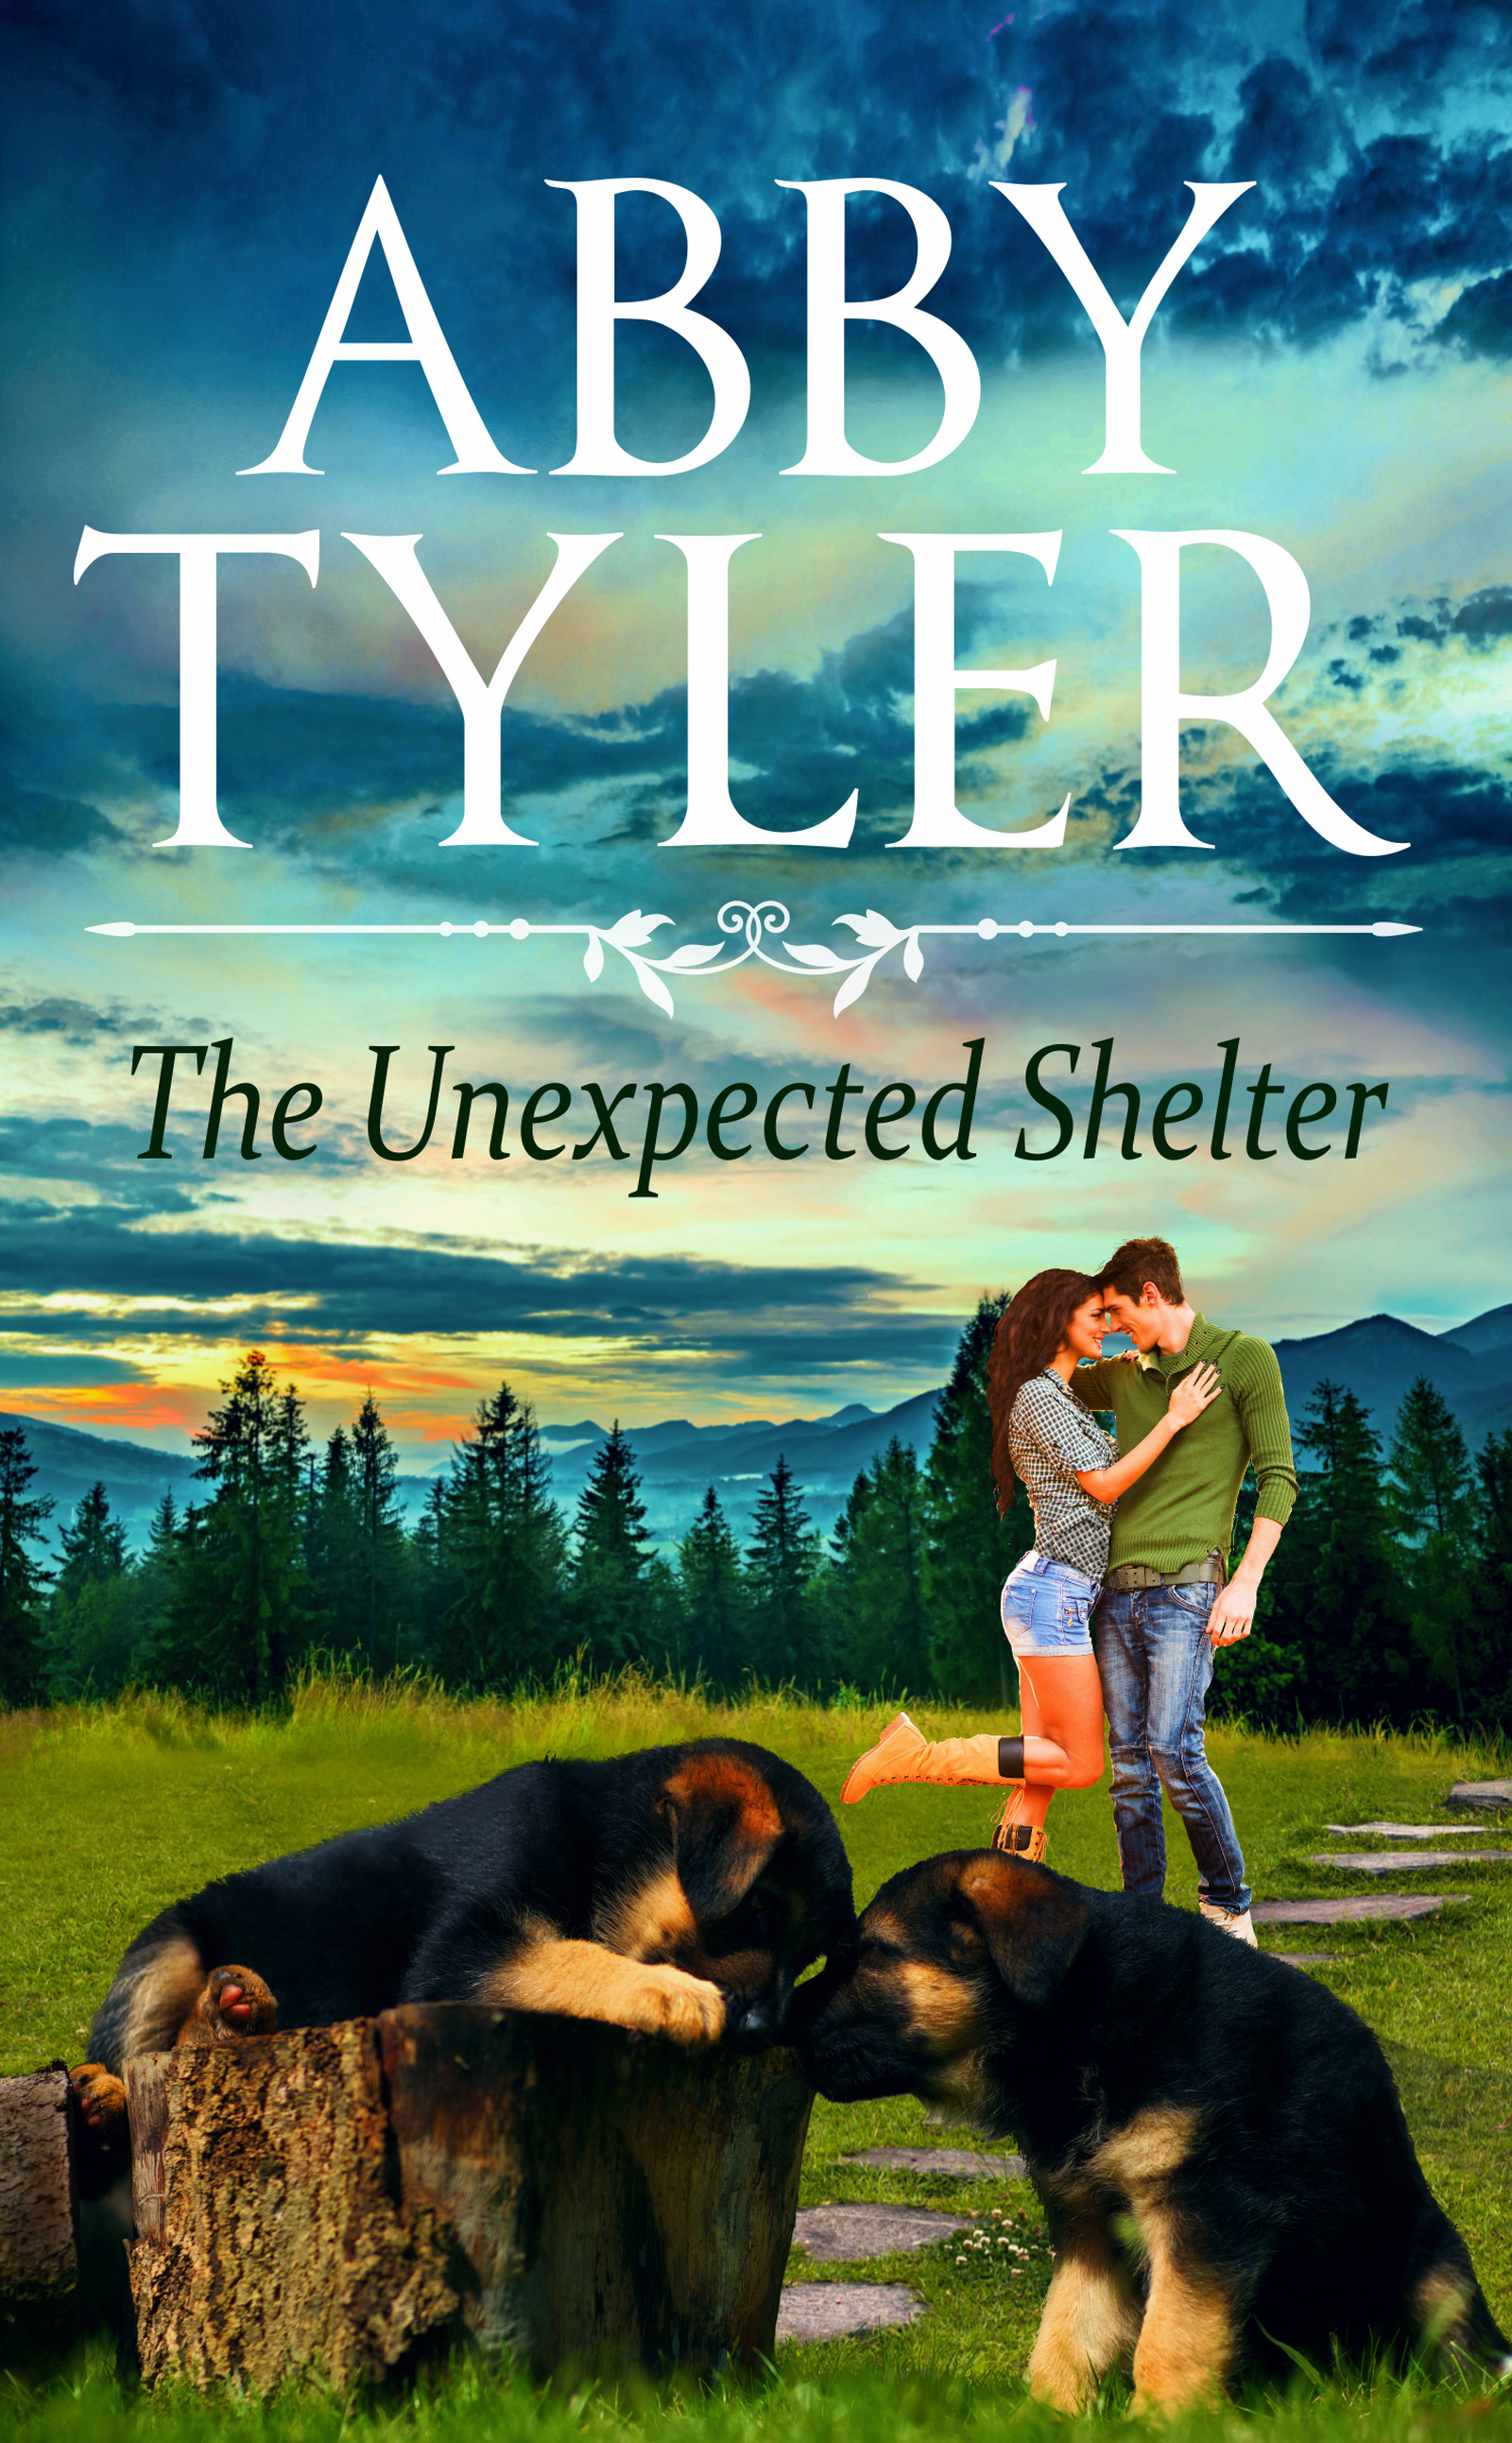 The Unexpected Shelter